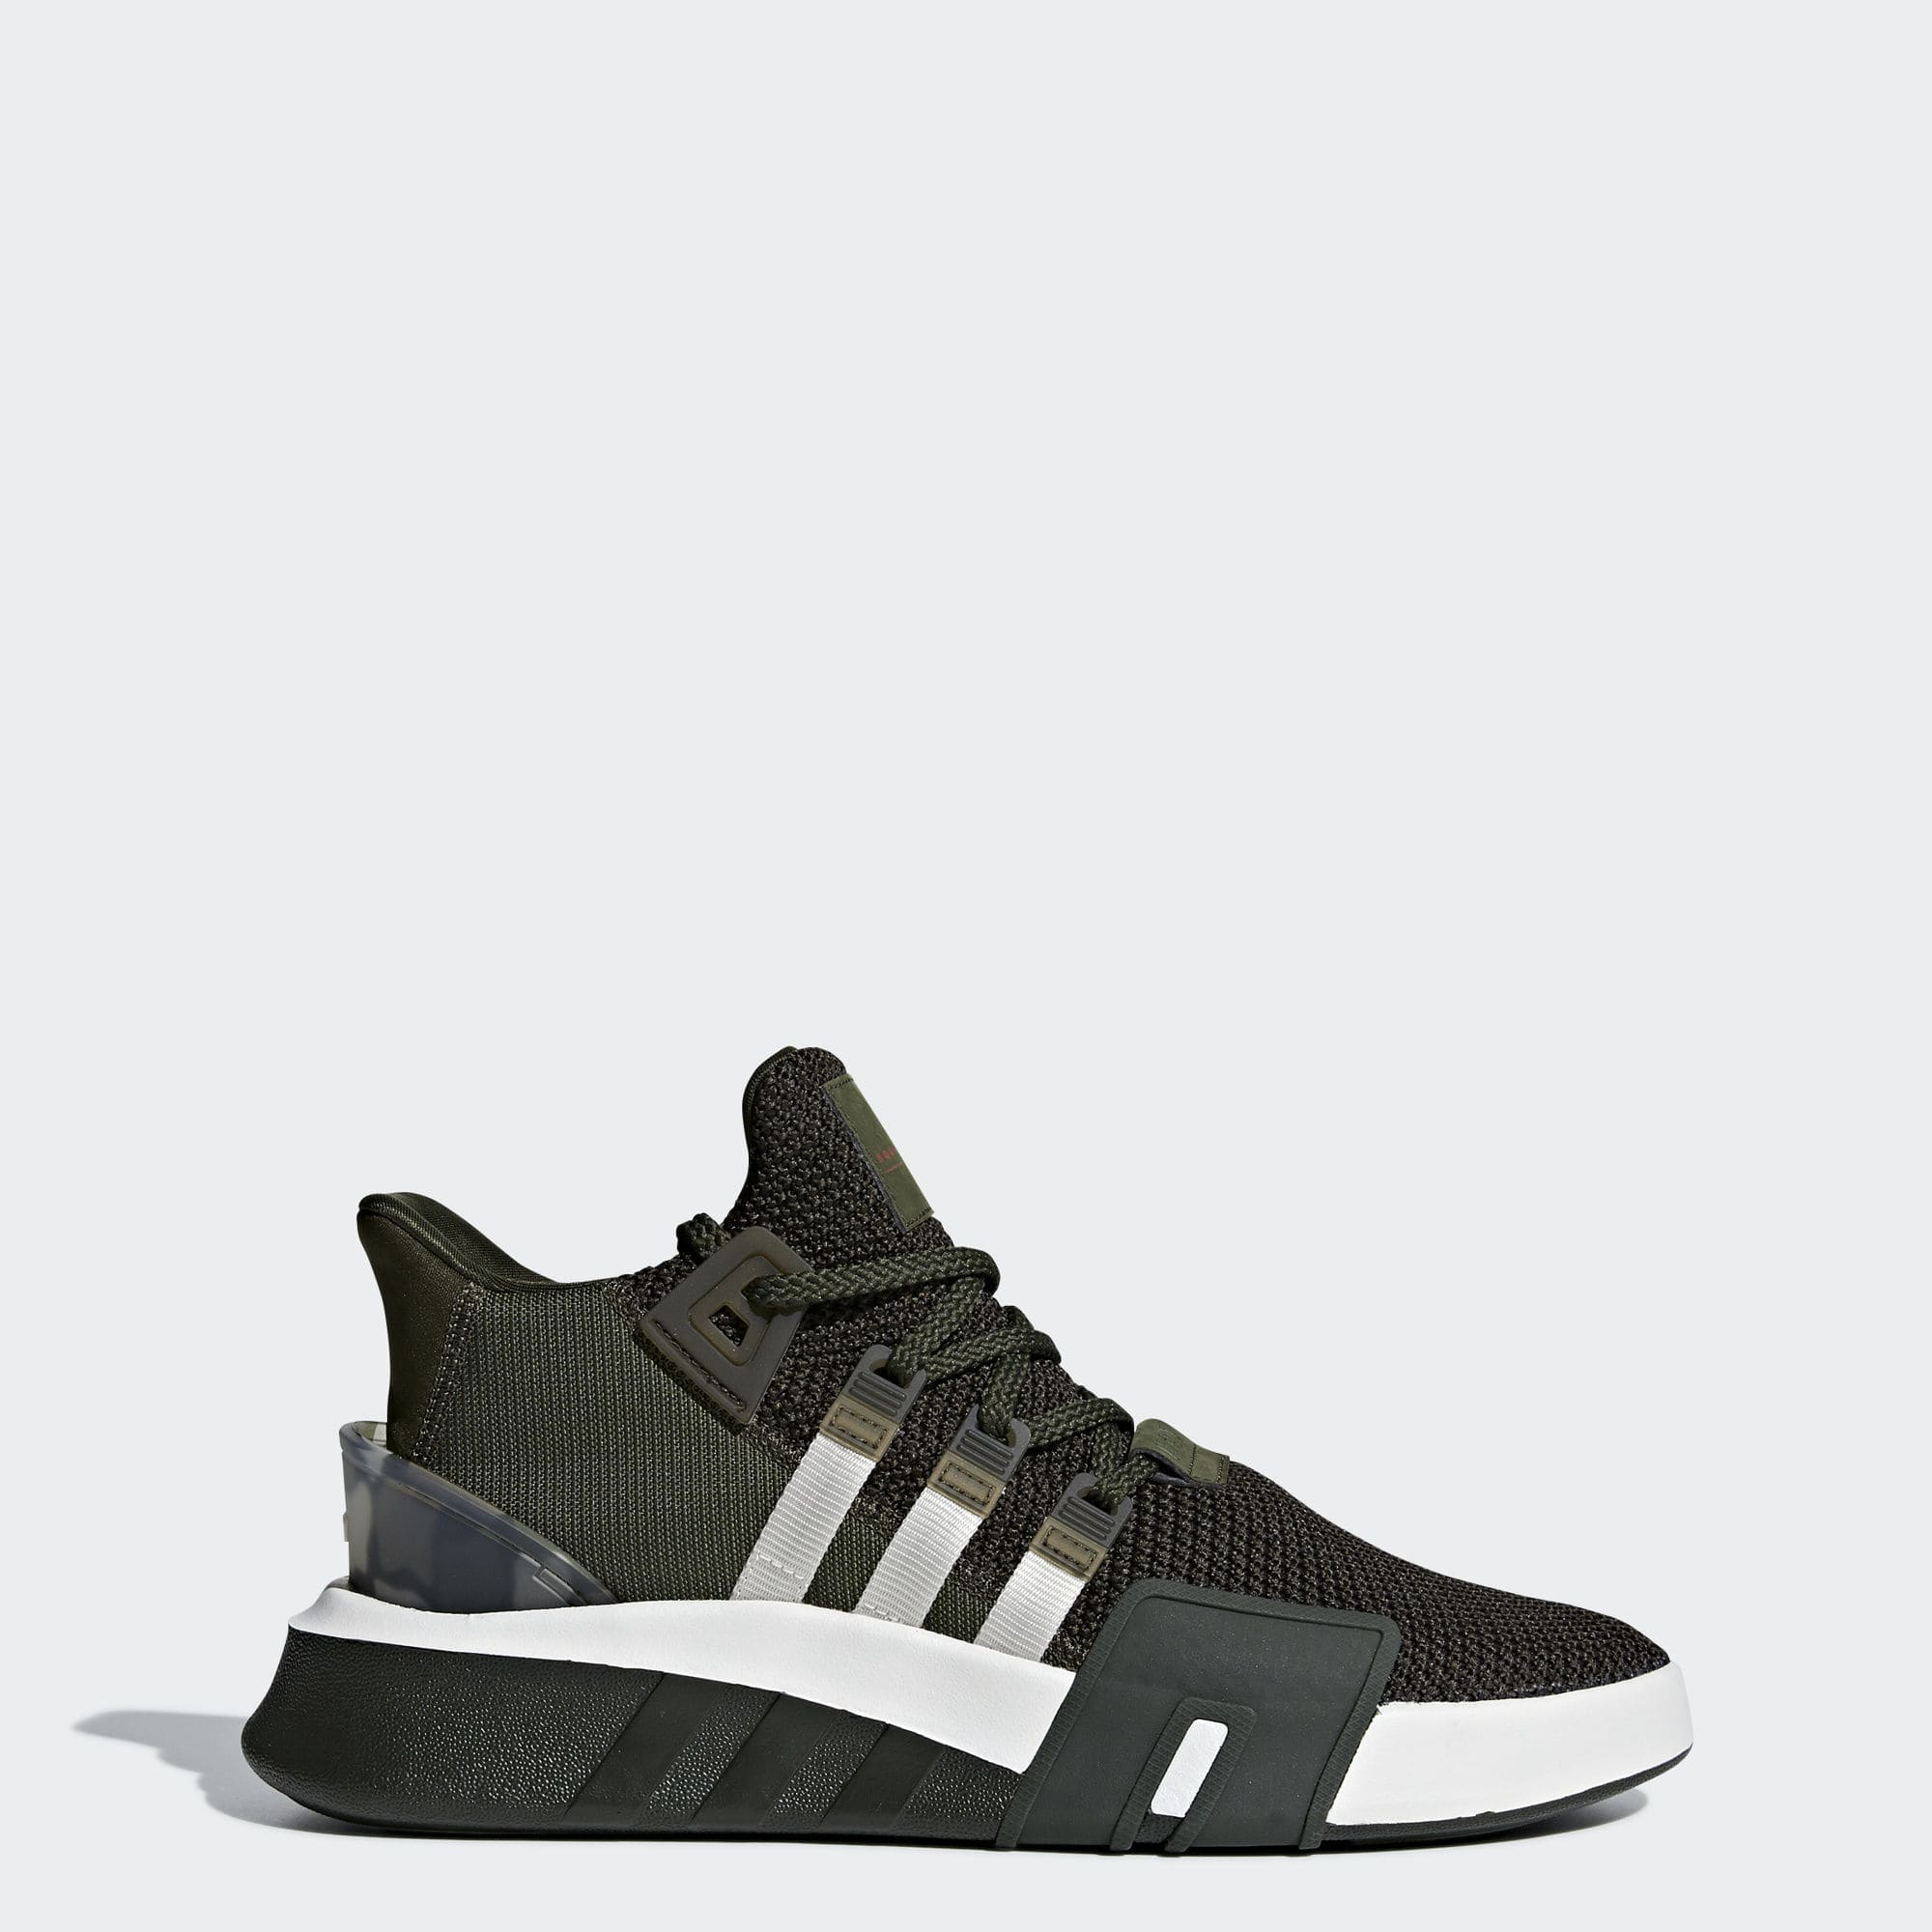 adidas Shoes: EQT Bask ADV $56, EQT Support ADV $44 + Free Shipping